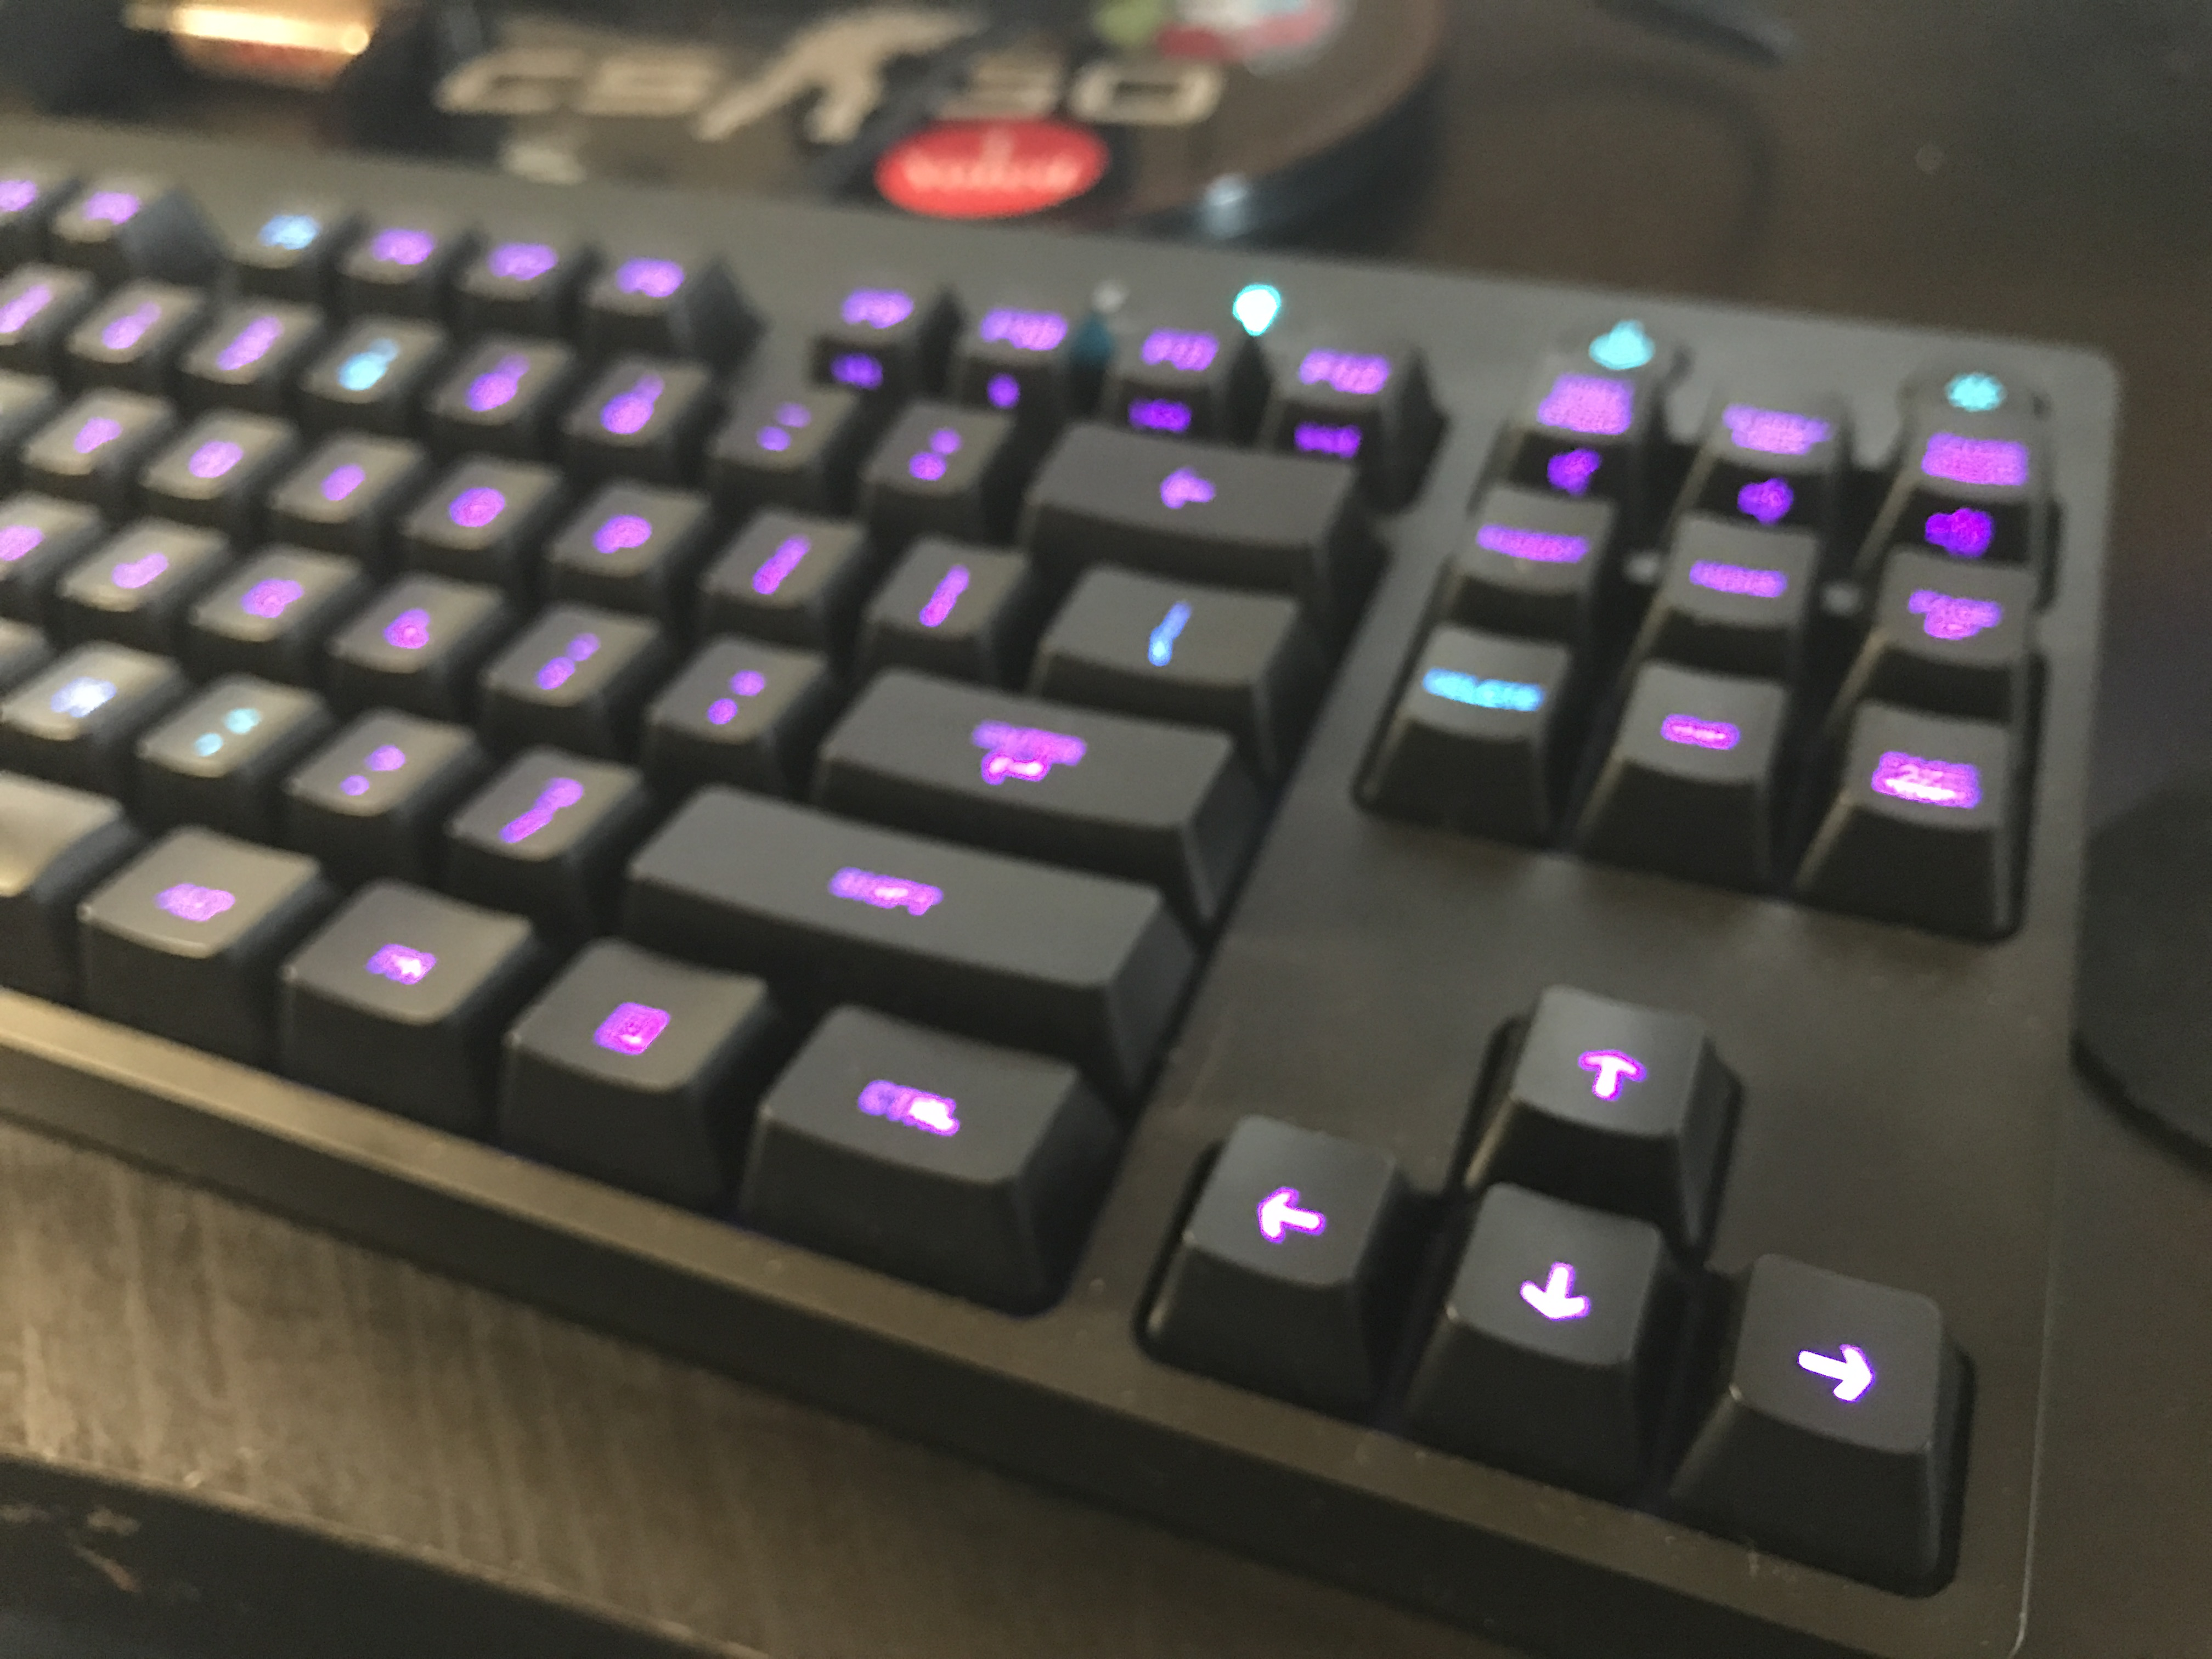 The Logitech G Pro Keyboard has gotten rid of the numpad, opting for a tenkeyless design instead.